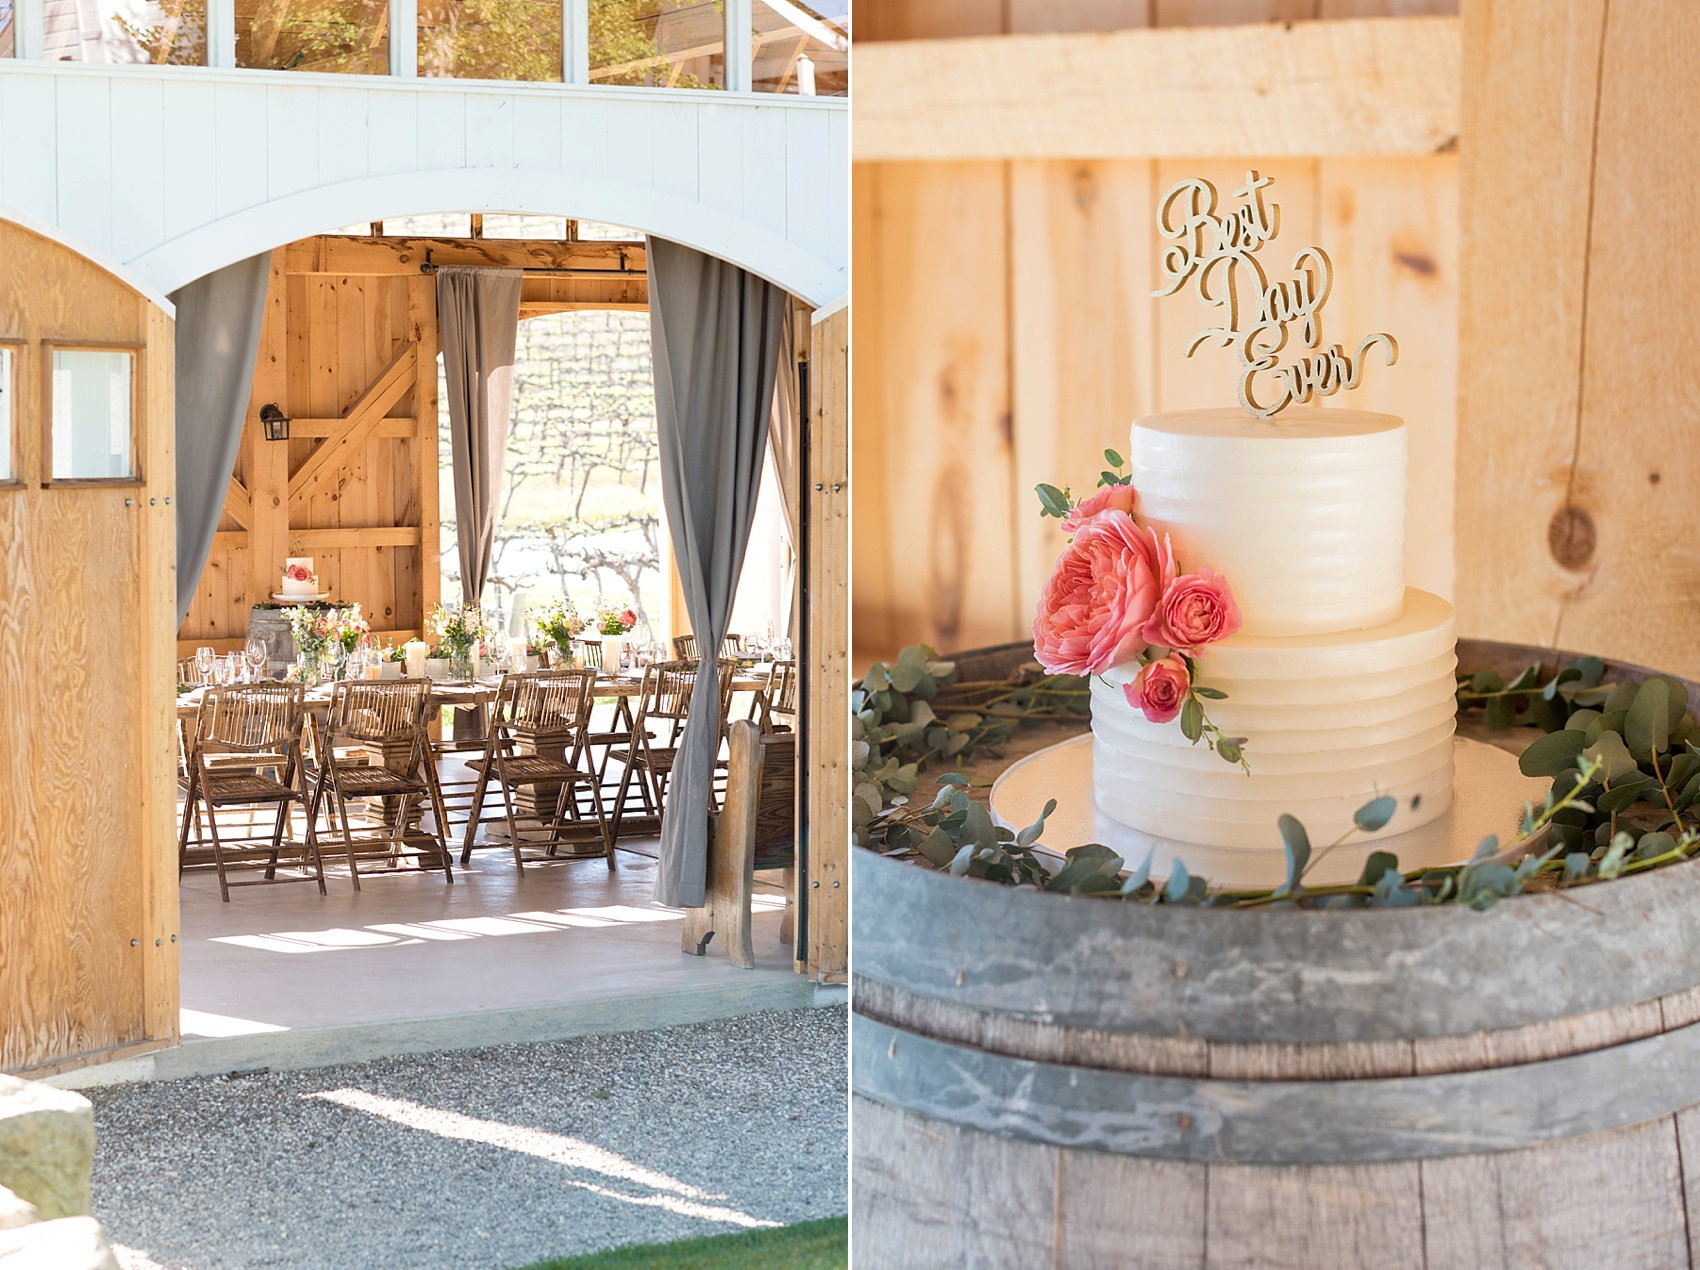 Spring vineyard elopement with barn reception. Photos by Mikkel Paige, destination wedding photographer. Held at HammerSky Vineyard, south of San Francisco.